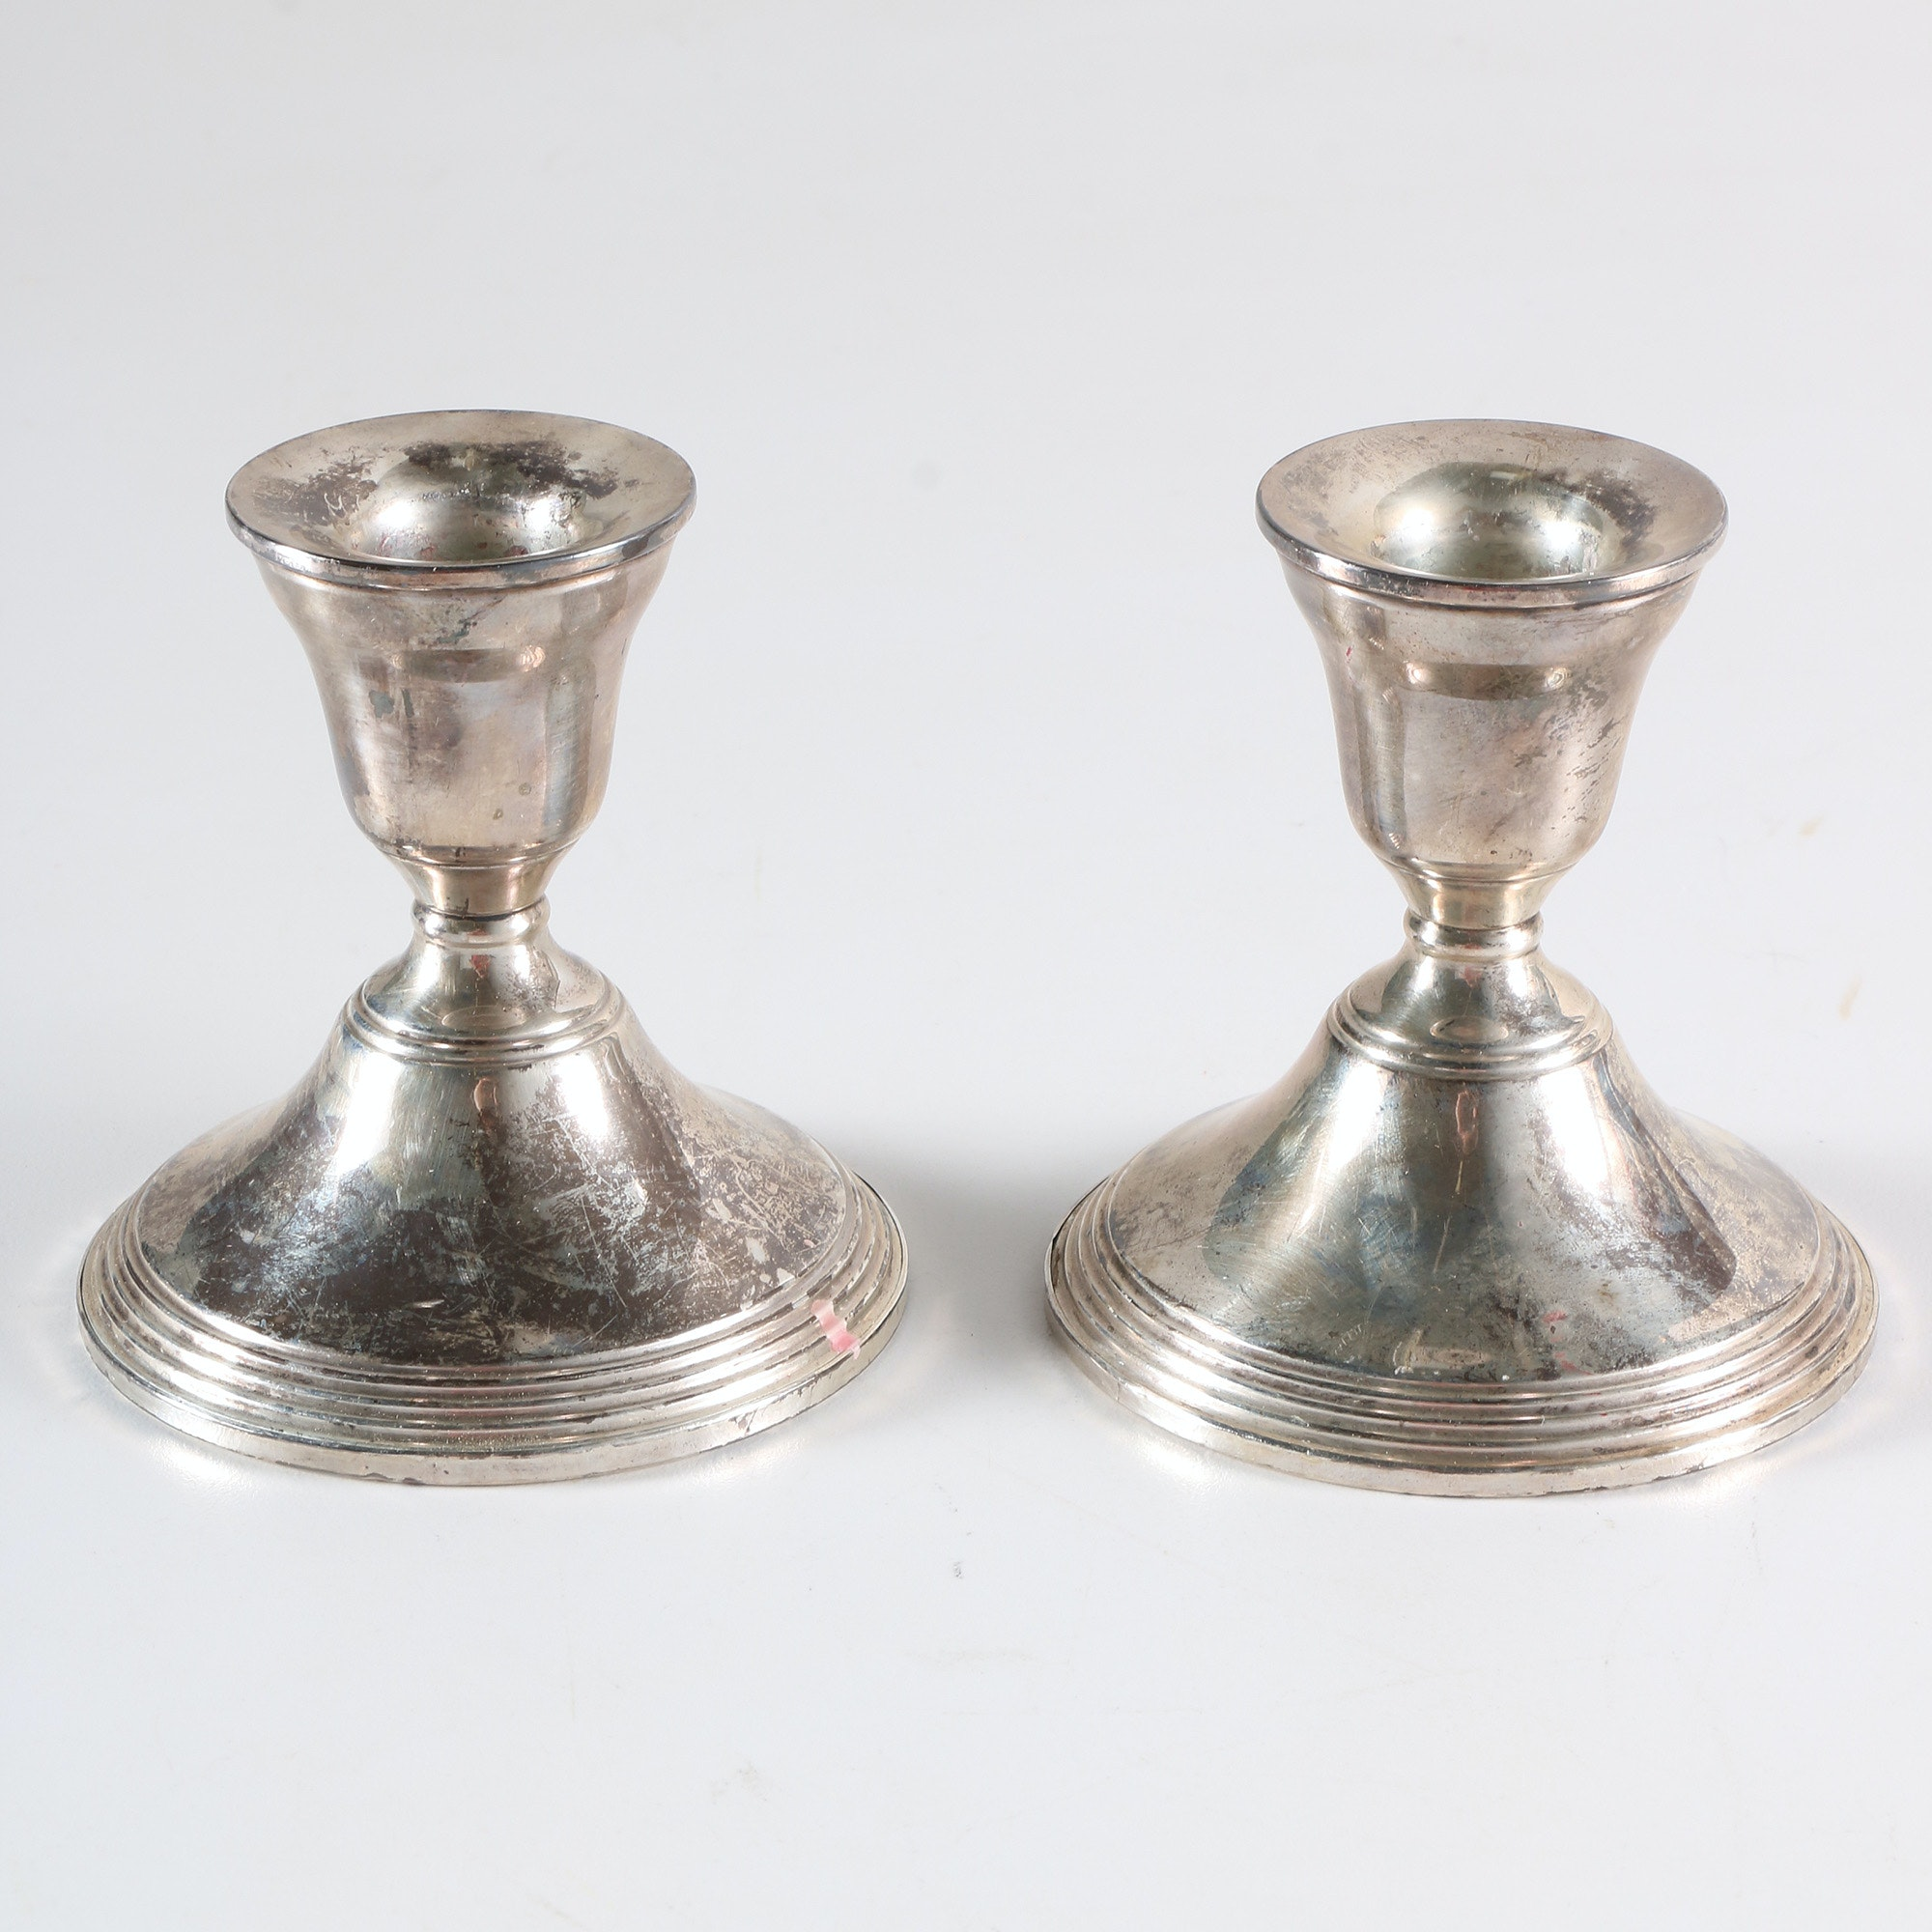 Preisner Weighted Sterling Silver Candleholders